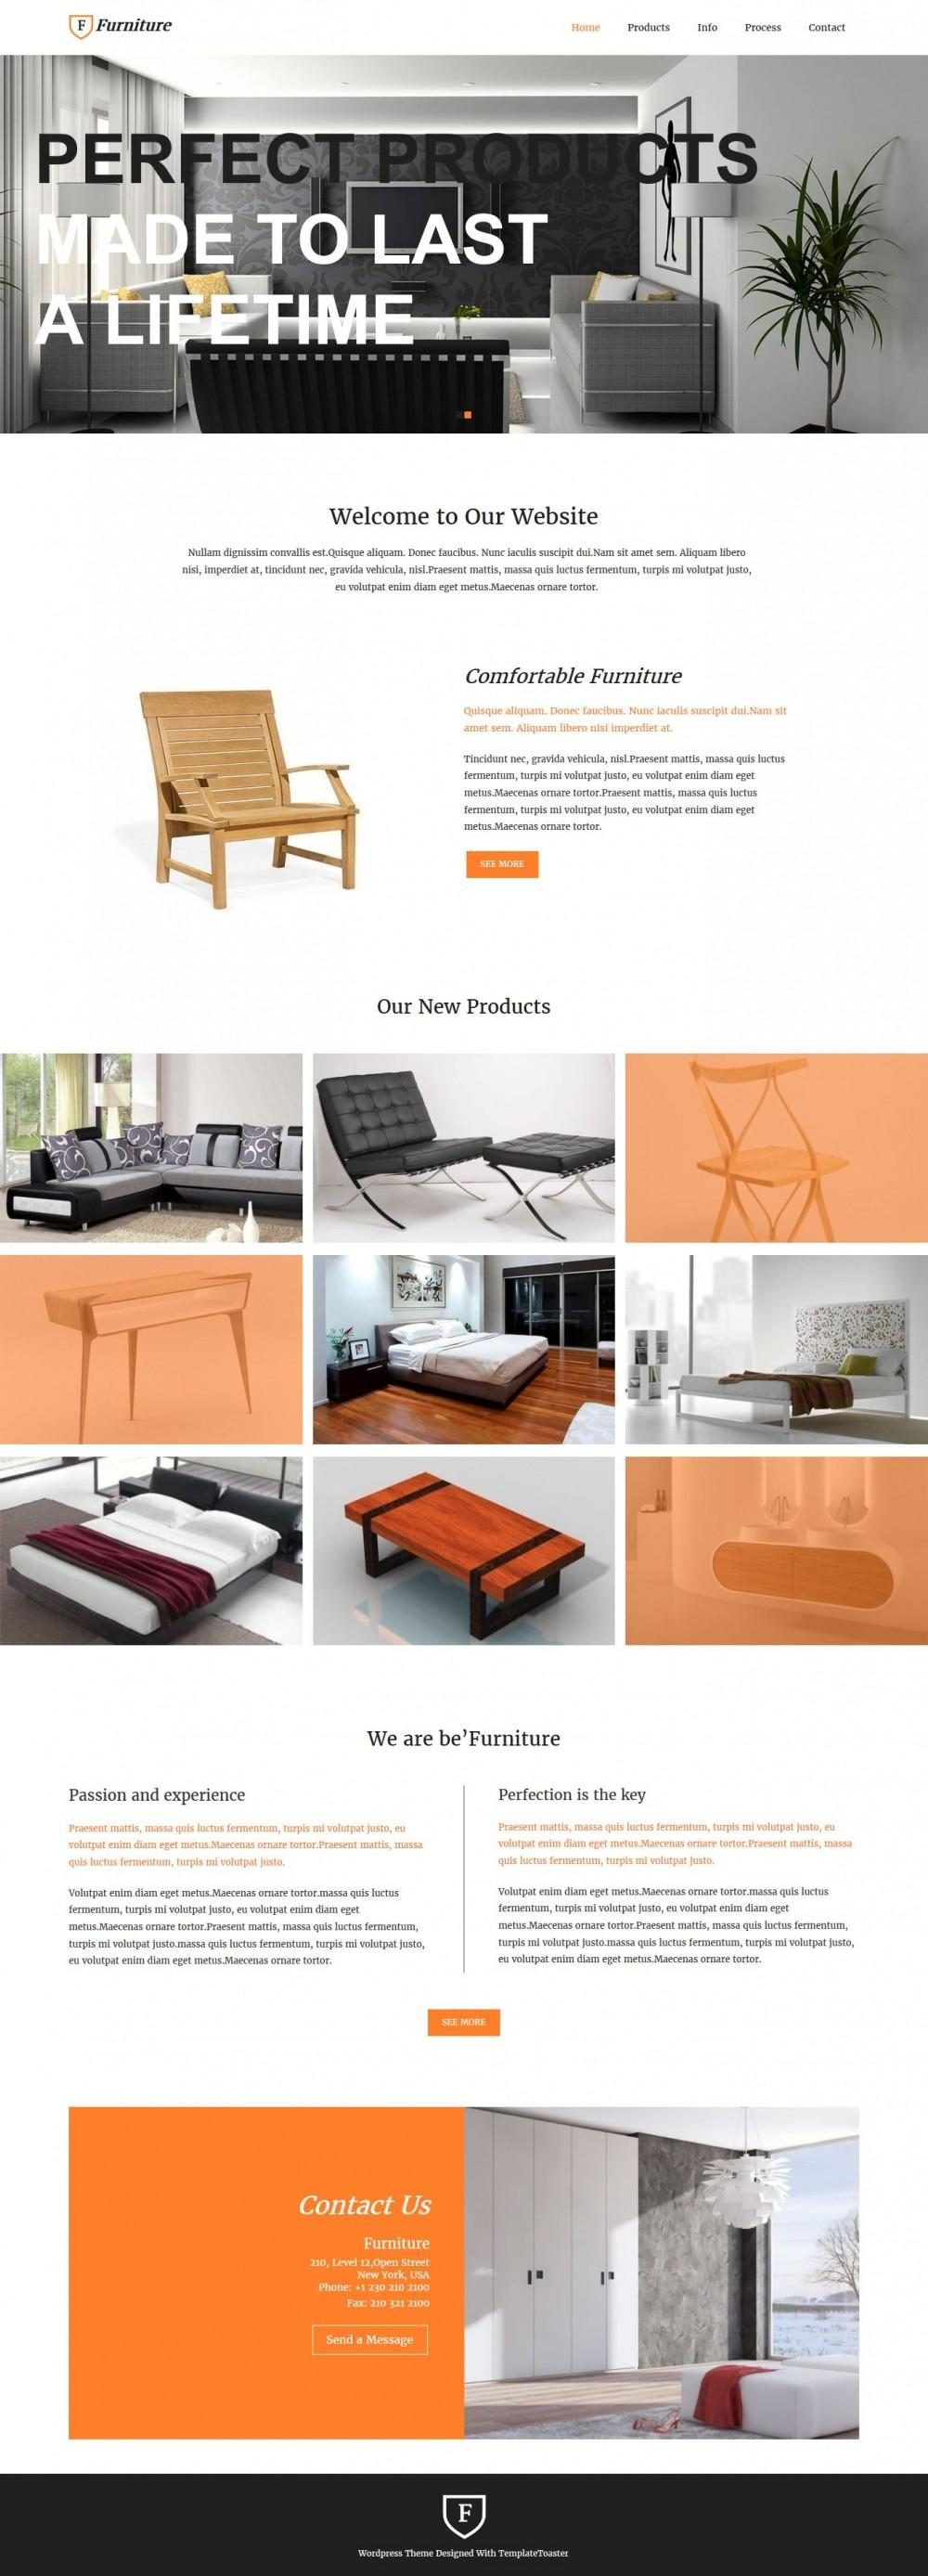 Furniture Enterprises Drupal Theme